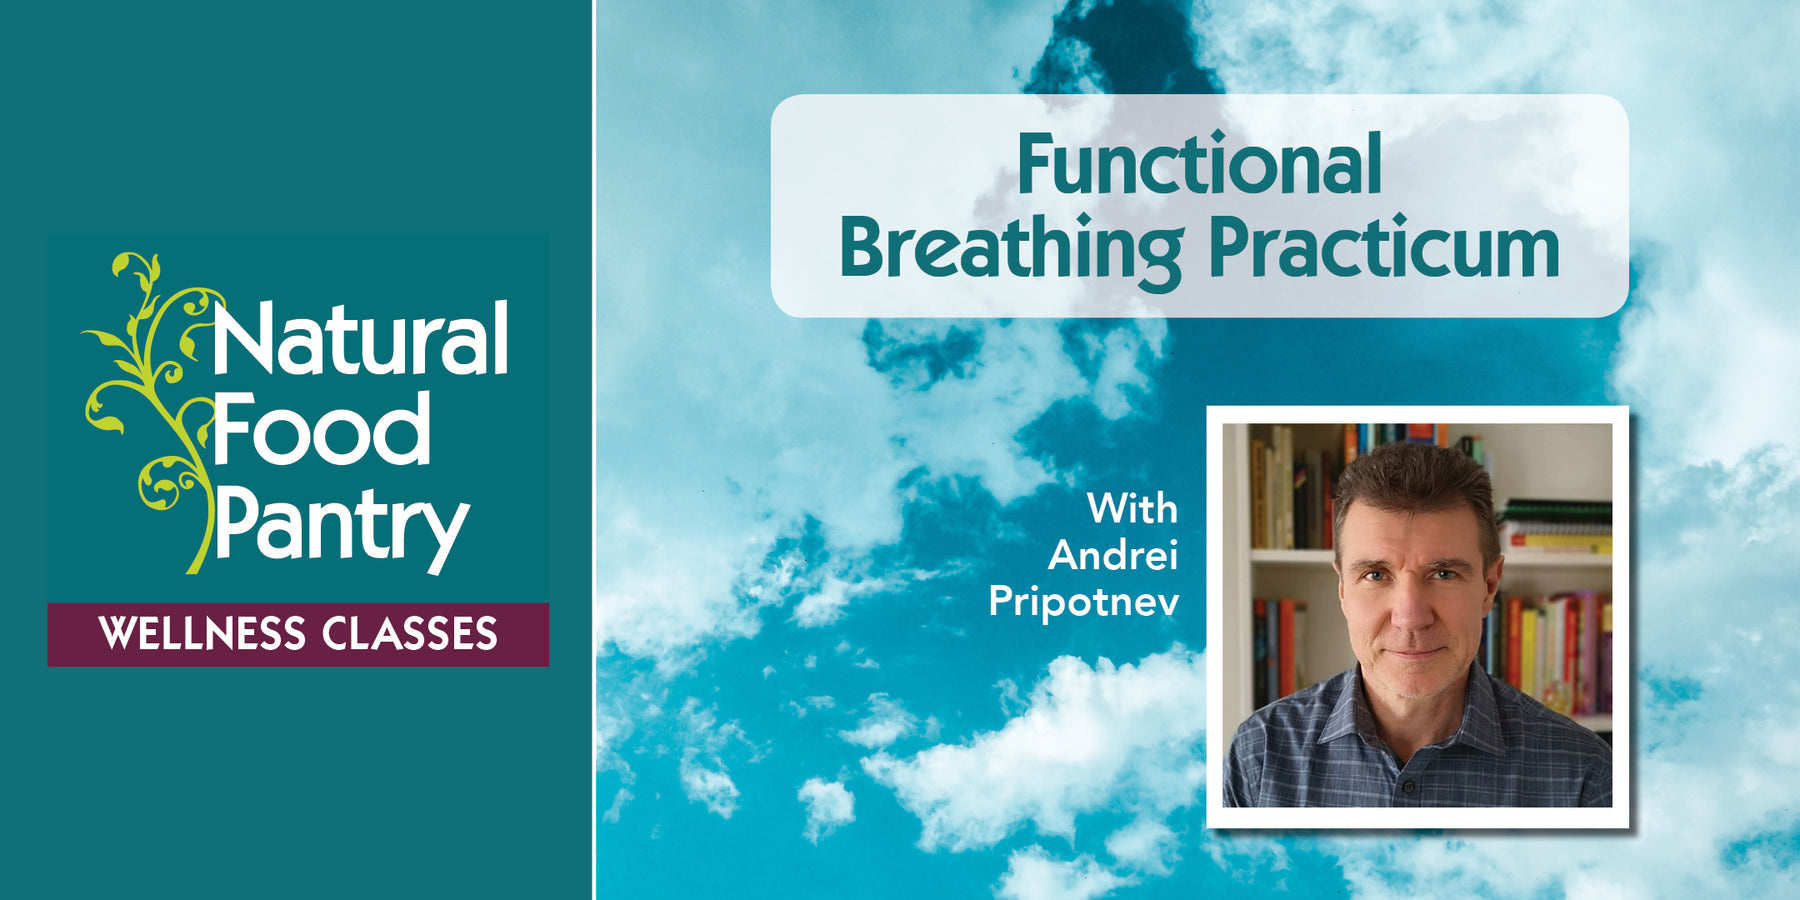 Apr 11: Functional Breathing Practicum